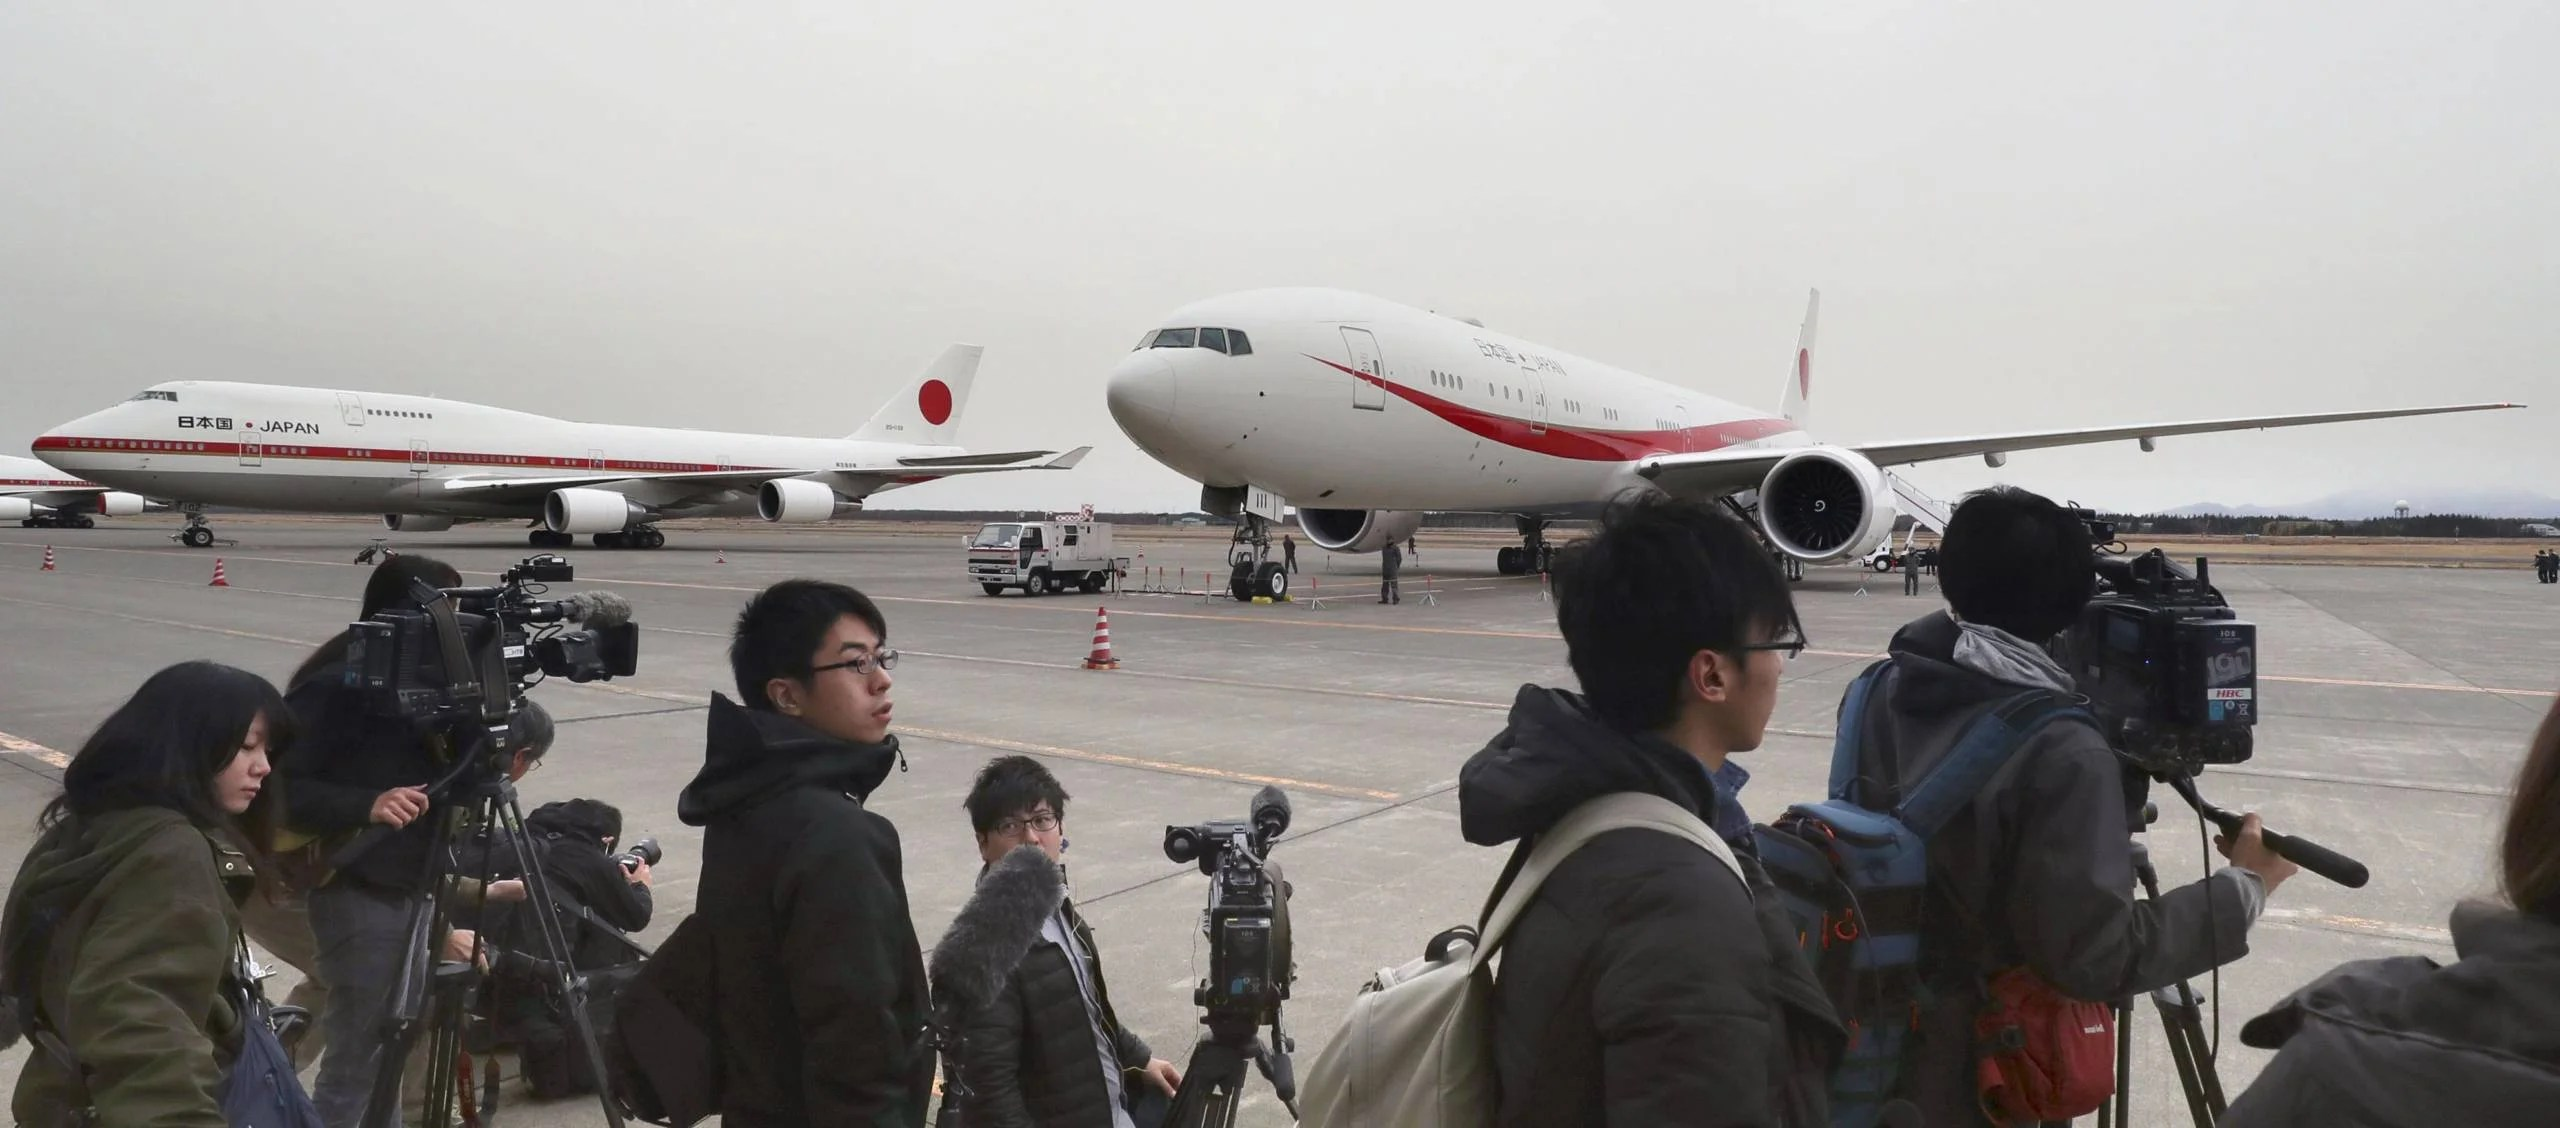 The new government Boeing 777-300 ER (R) is shown to the press at the Japan Air Self-Defense Force's base in Chitose, Hokkaido, on Dec. 6, 2018. On the left is the current Boeing 747. (Kyodo)==Kyodo (Photo by Kyodo News Stills via Getty Images)